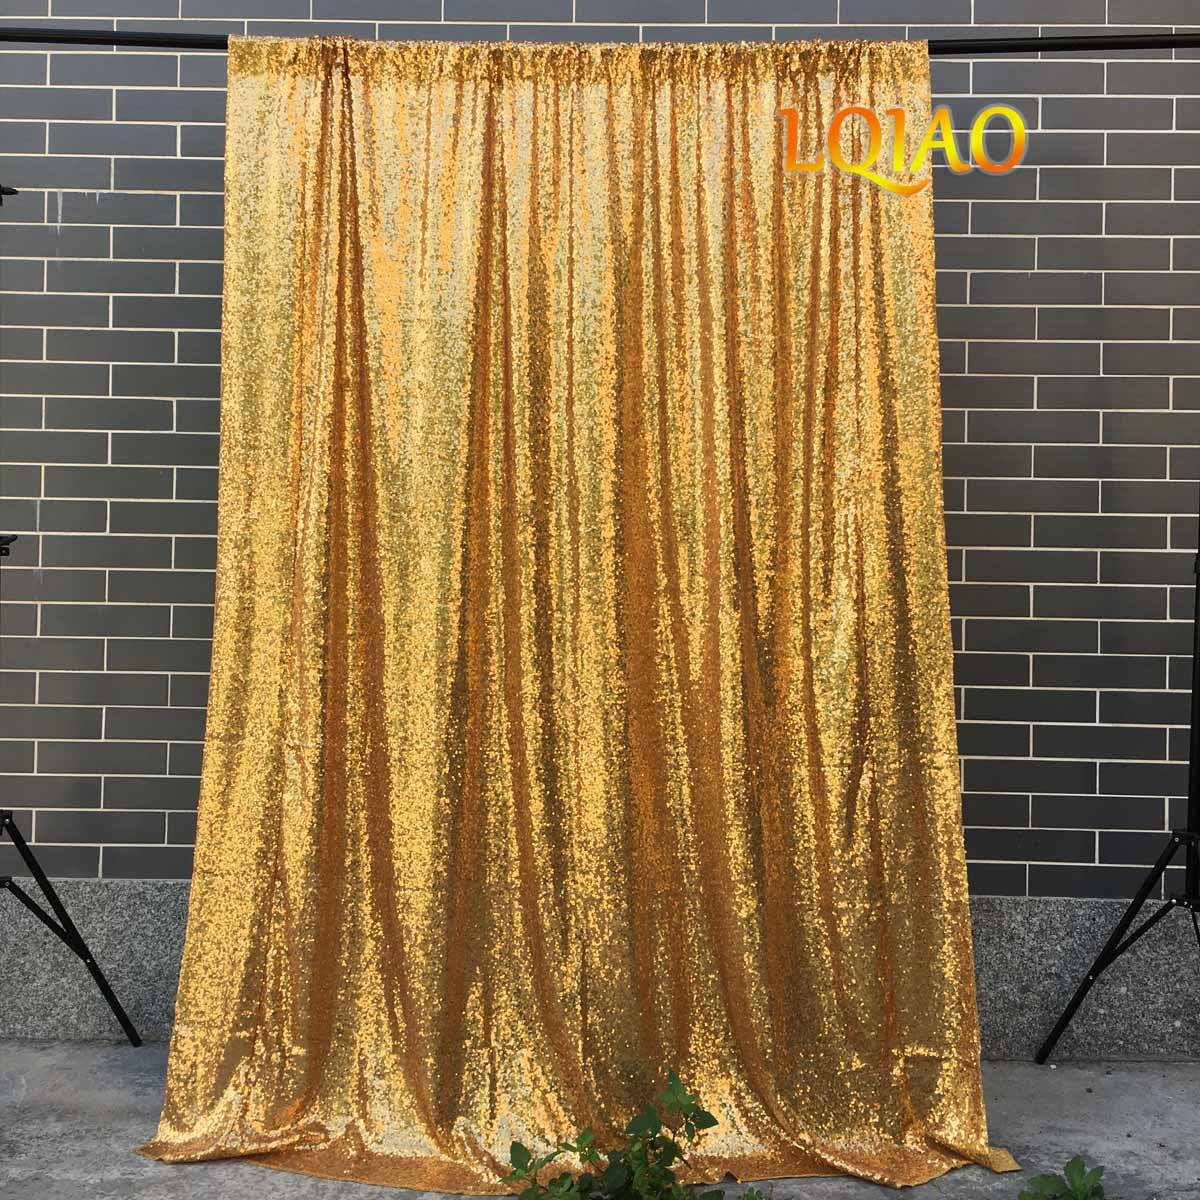 LQIAO Wedding Christmas Backdrop Glitter Gold 4FTx8FT Sequin Backdrop Window Curtain Photo Booth Photography Party Decoration